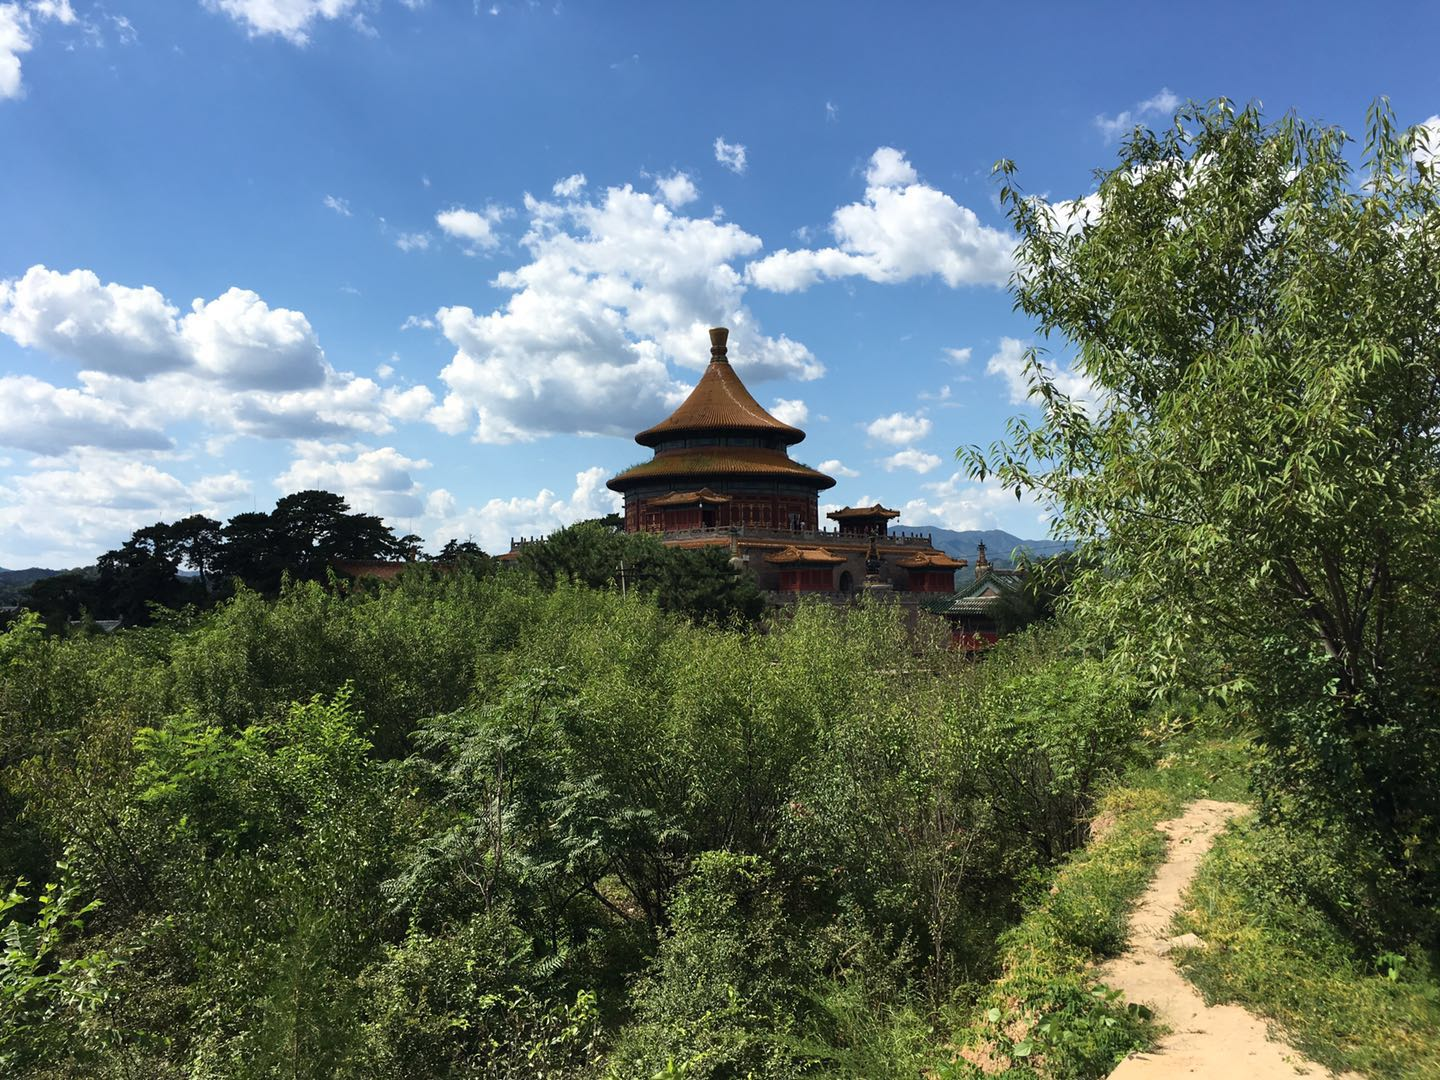 Chengde from the distance